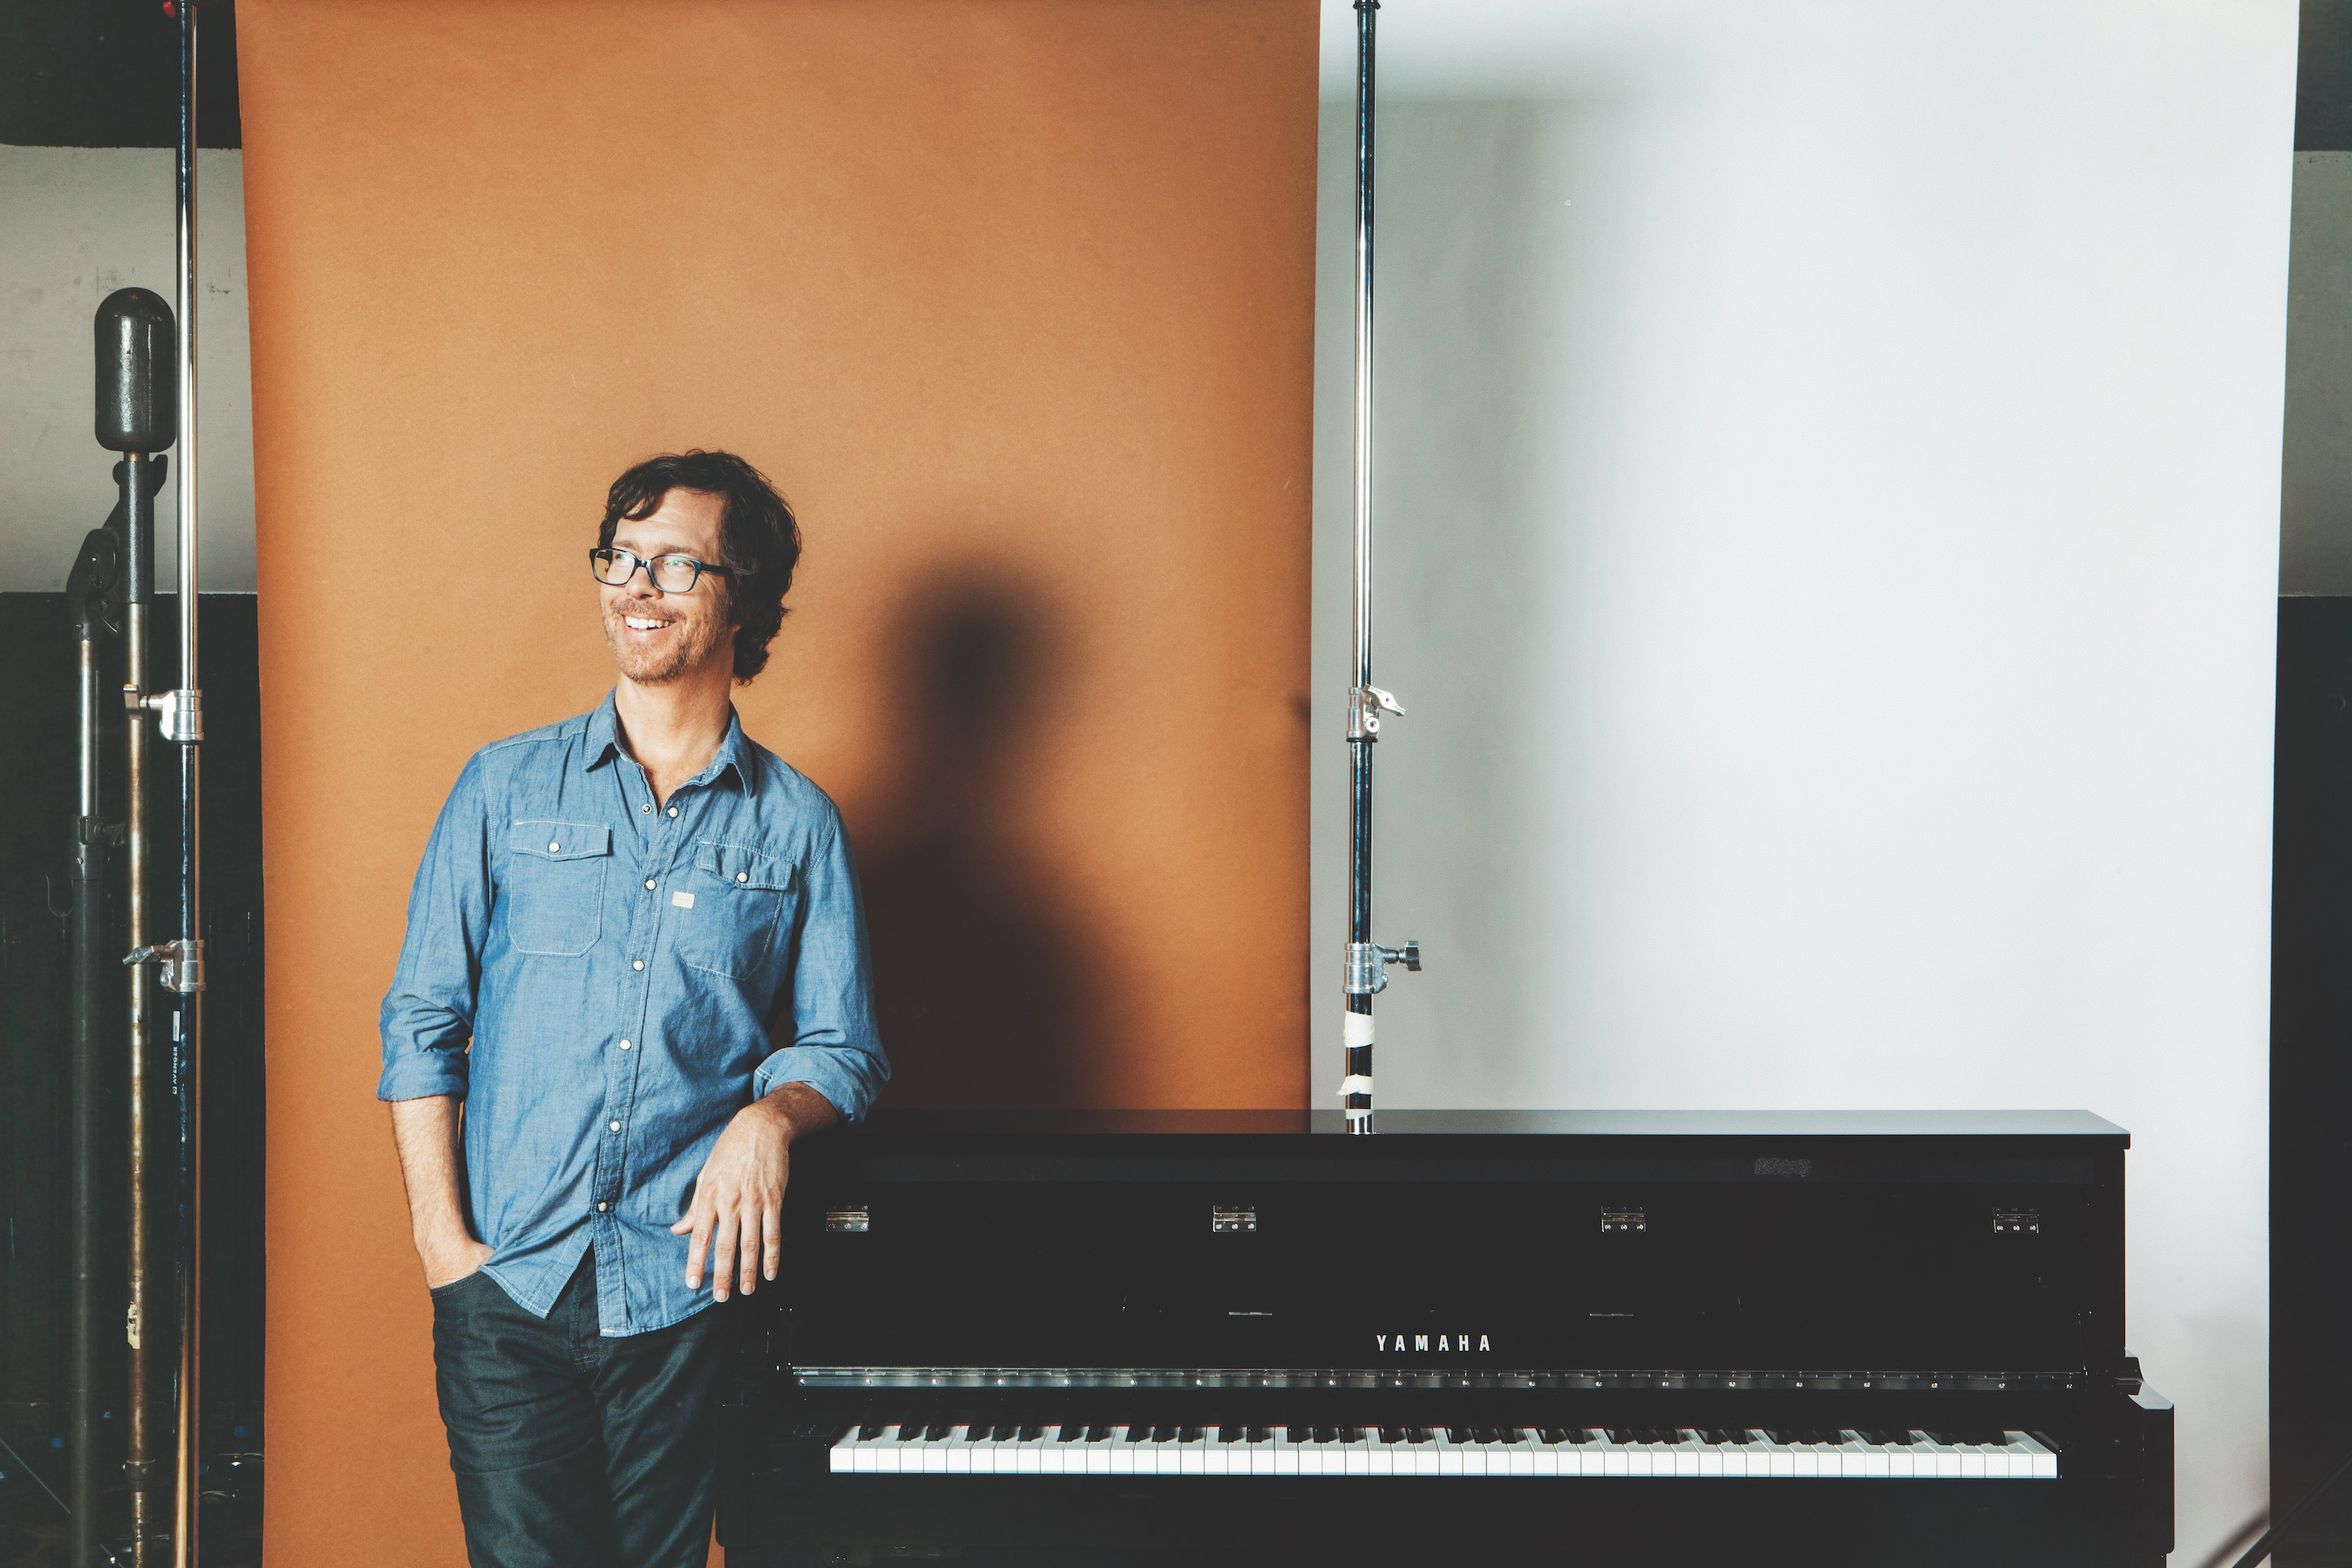 BenFolds horizontal